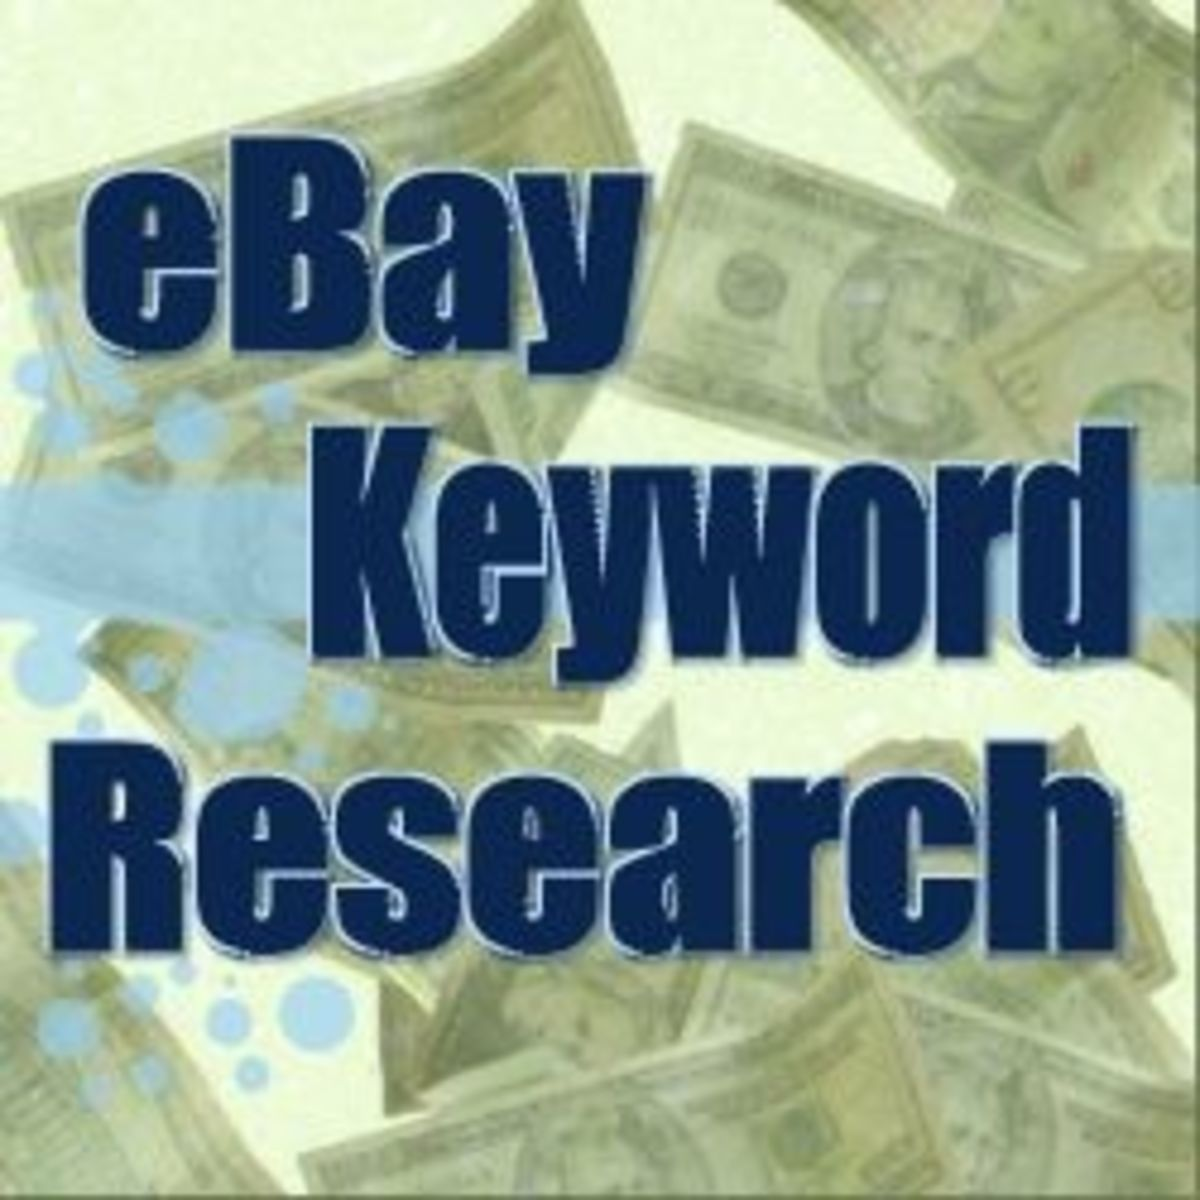 Ebay Auctions Keyword Research